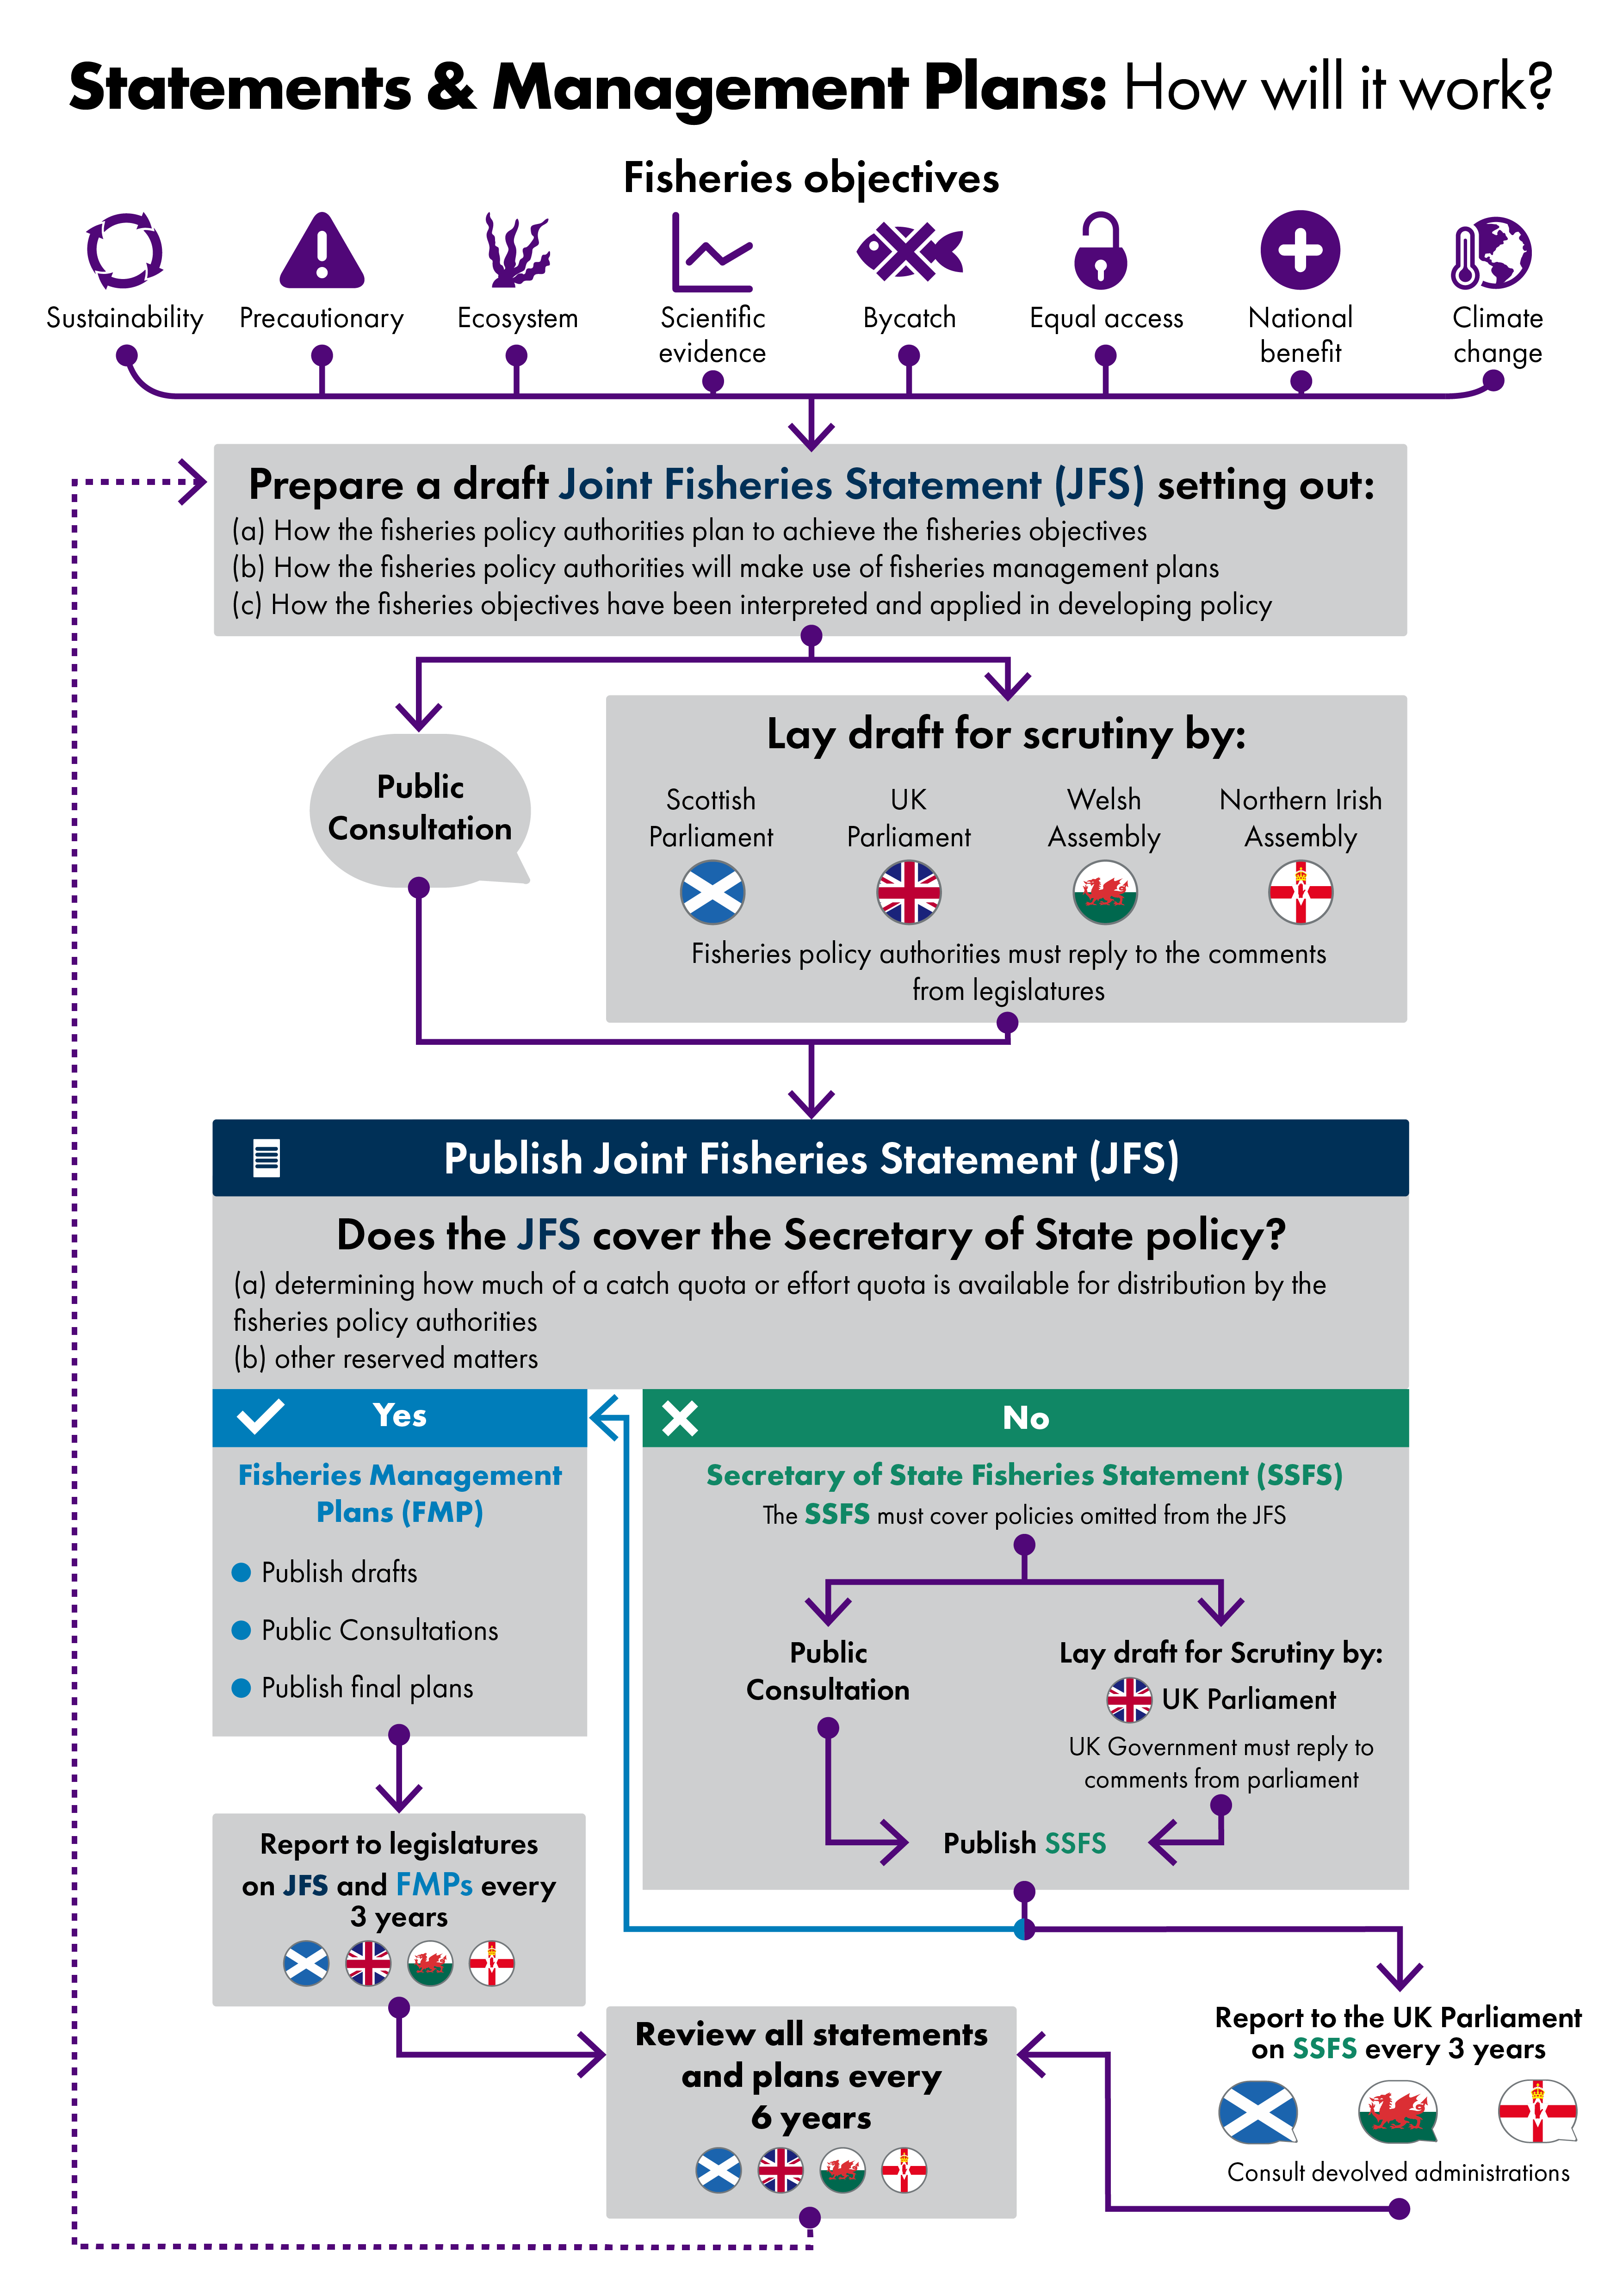 Flow diagram setting out how Joint Fisheries Statements are developed and approved by the UK Government and devolved administrations